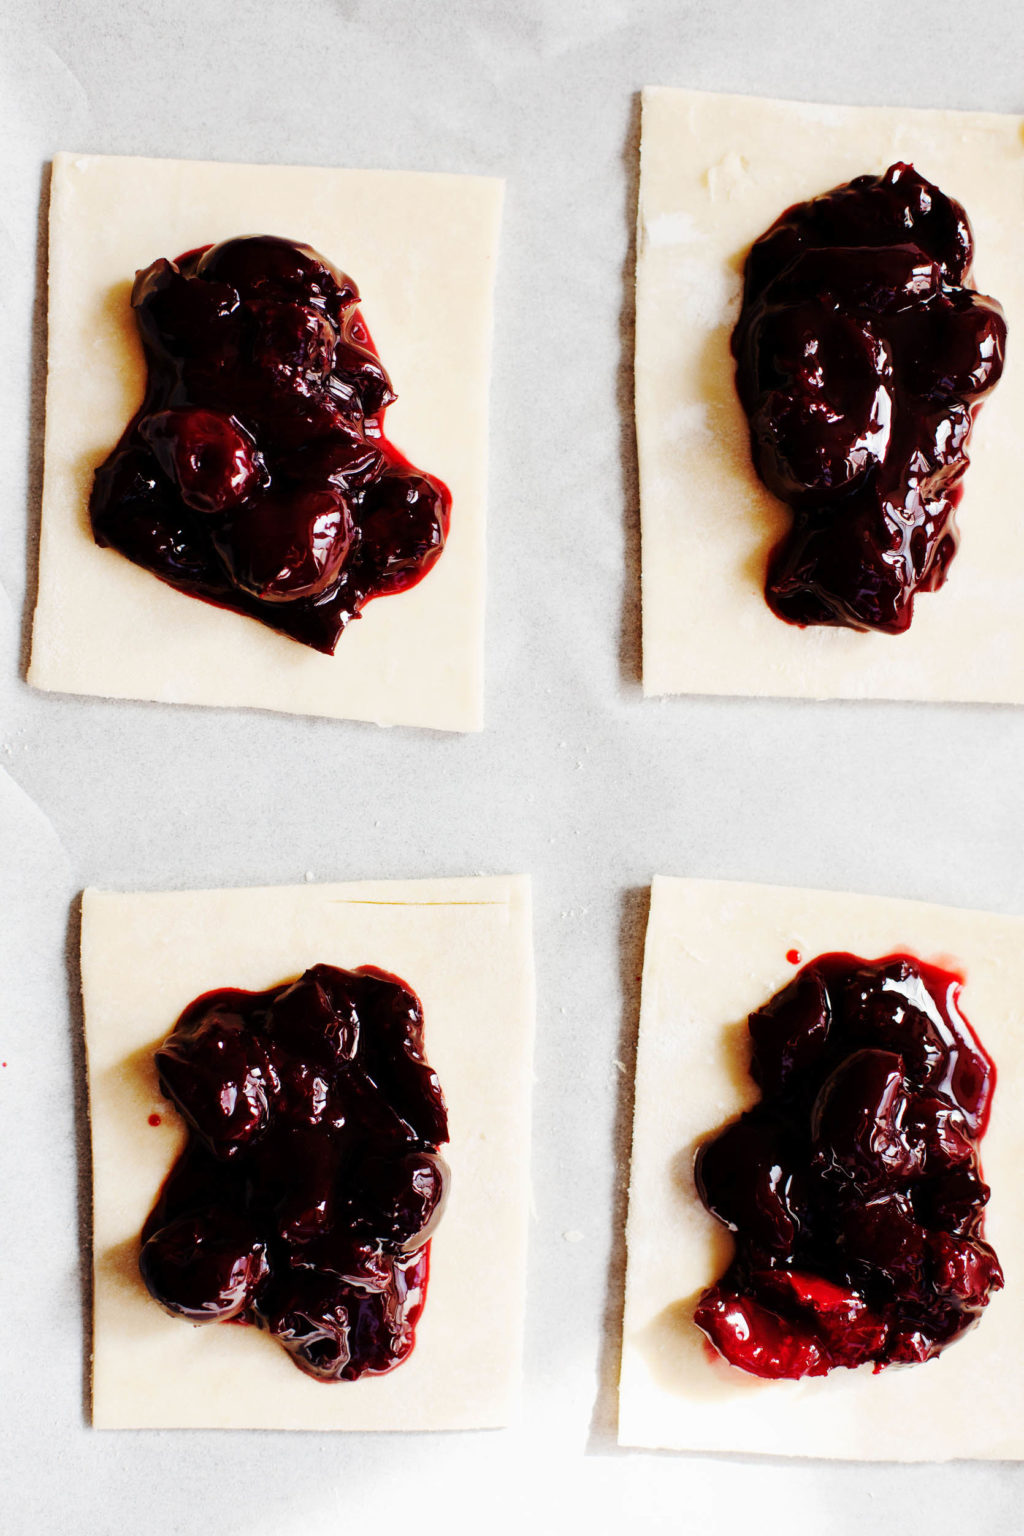 Vegan pastry pies on a parchment sheet, cut into rectangles. Each rectangle is topped with a sweet cherry filling.